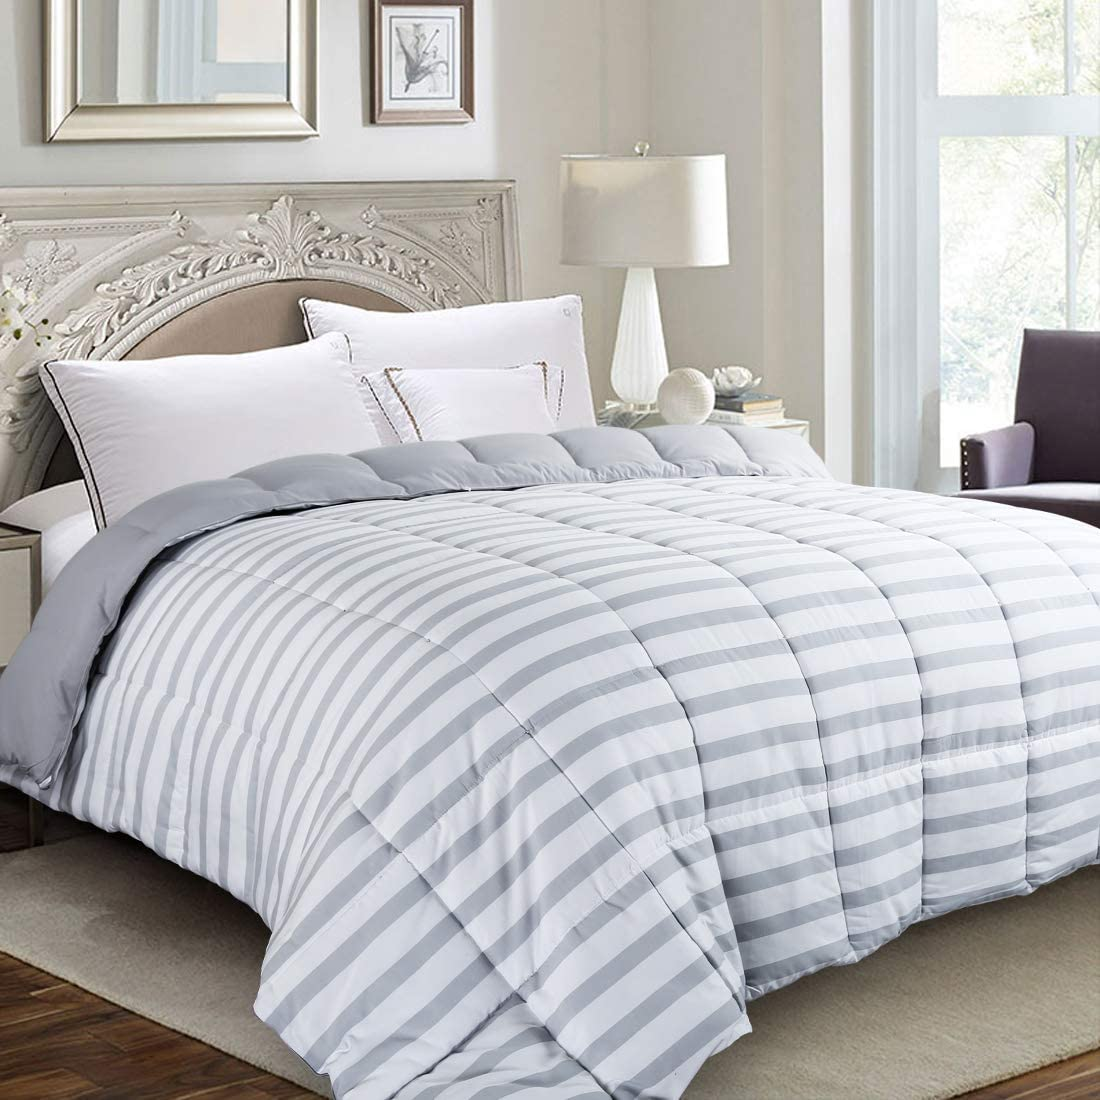 EDILLY All Season Luxury Down Alternative Quilted Queen Comforter-Stand Alone Comforter for Queen Size Bed,Summer Cool Soft Reversible Duvet Insert with 4 Corner Tabs,88''x 88'',Gray White Stripe